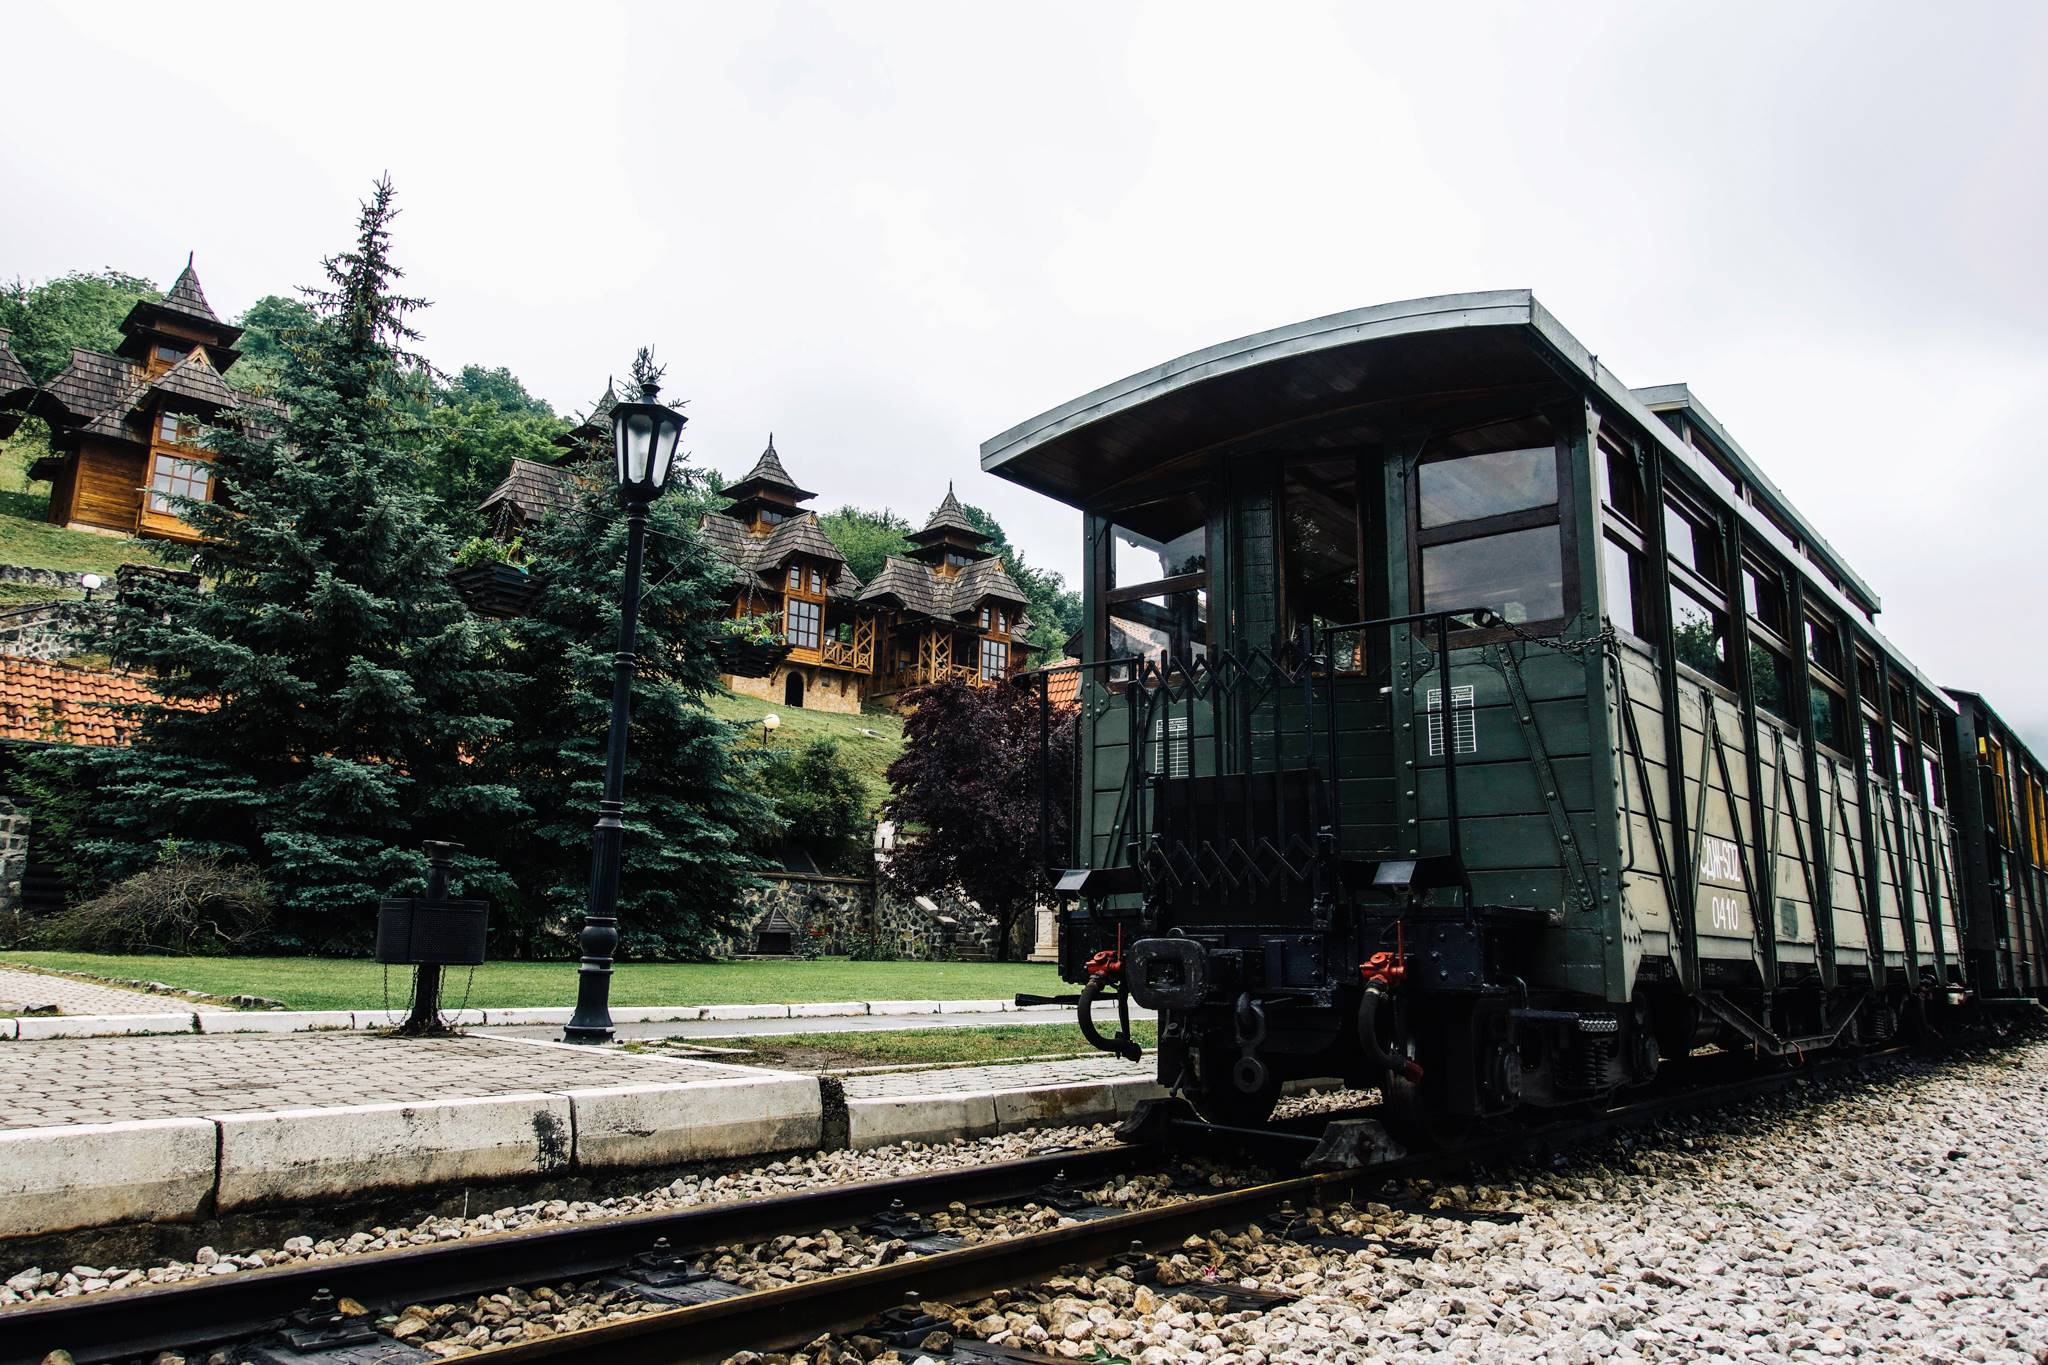 Serbia is one of the countries where you just simply need a rental car in order to experience all that it has to offer. Soak in the untouched natural beauty of this country, dive into its history, and enjoy your drive! Have a look at our 7 day itinerary for a road trip through Serbia...Read more at www.thefivefoottraveler.com